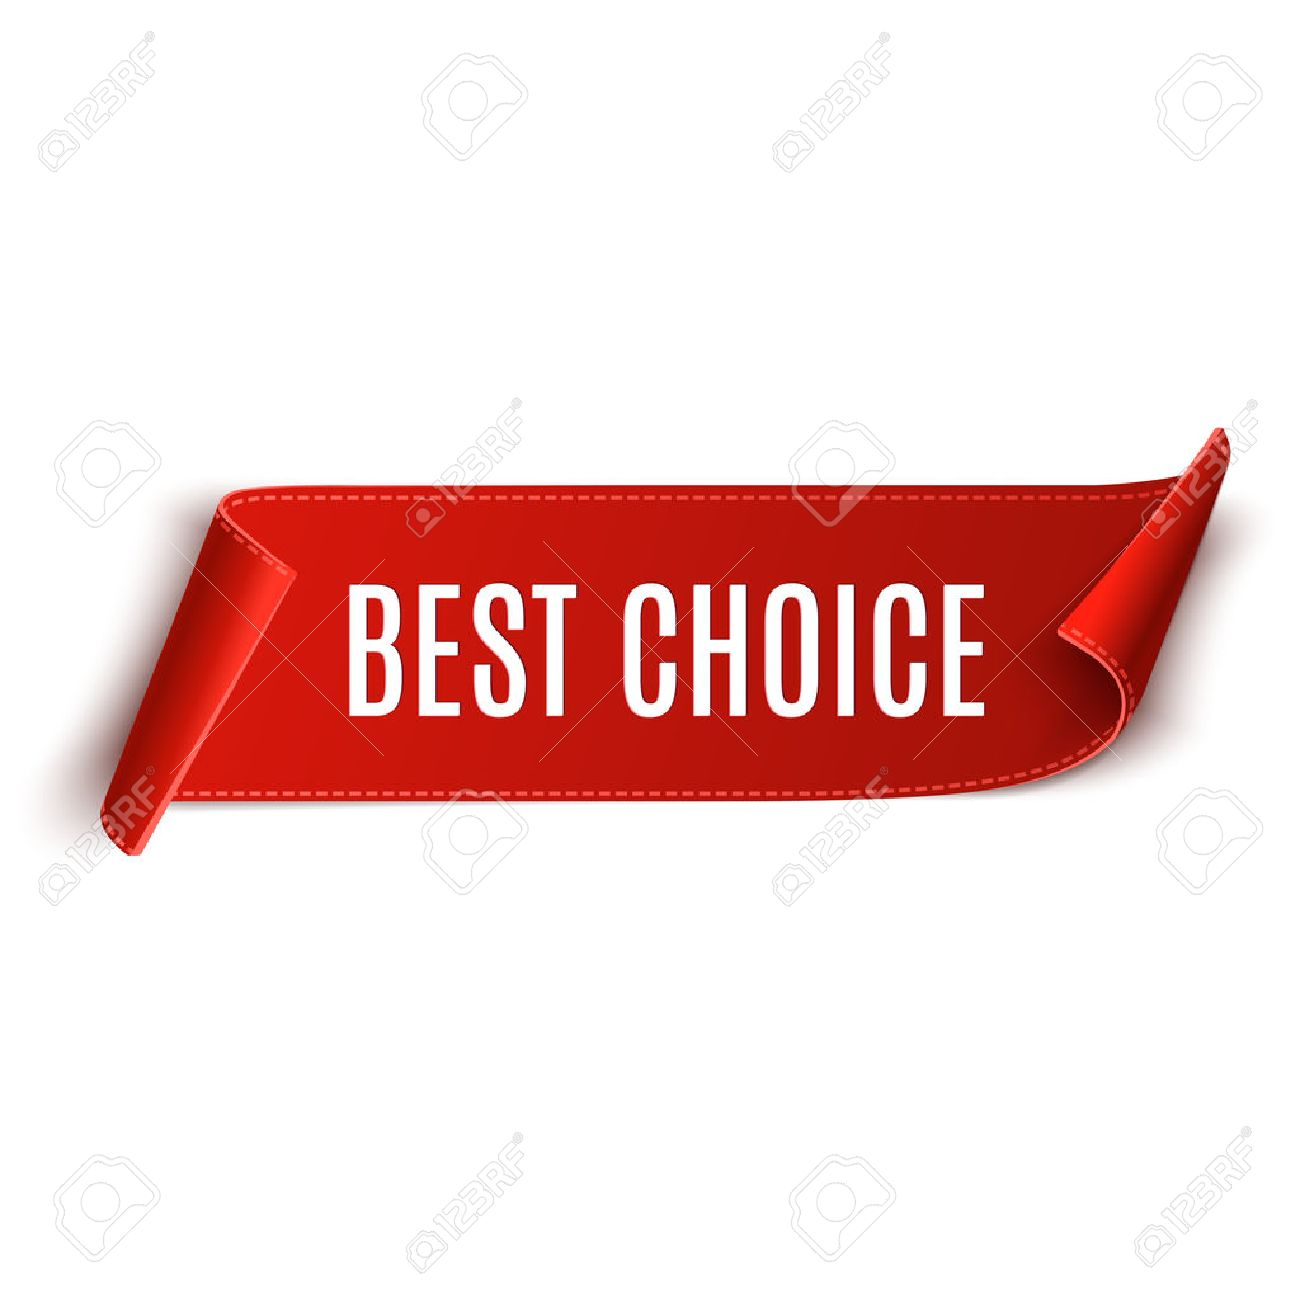 best choice vector banner red curved paper banner isolated on